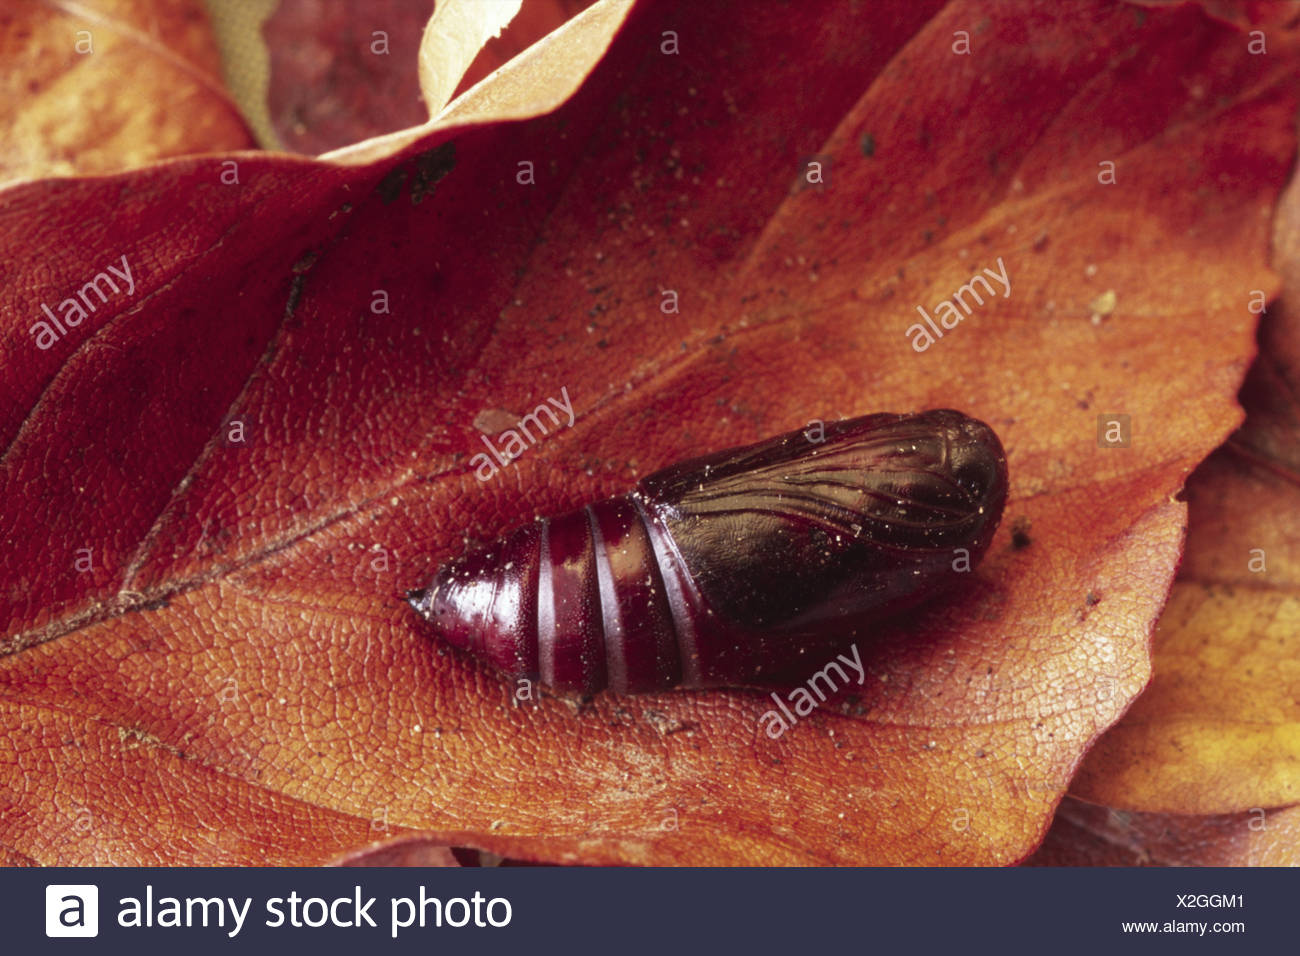 caterpilllar gothica hebrew character insect bug nature natural wild wildlife environment environmental europe european powys - Stock Image